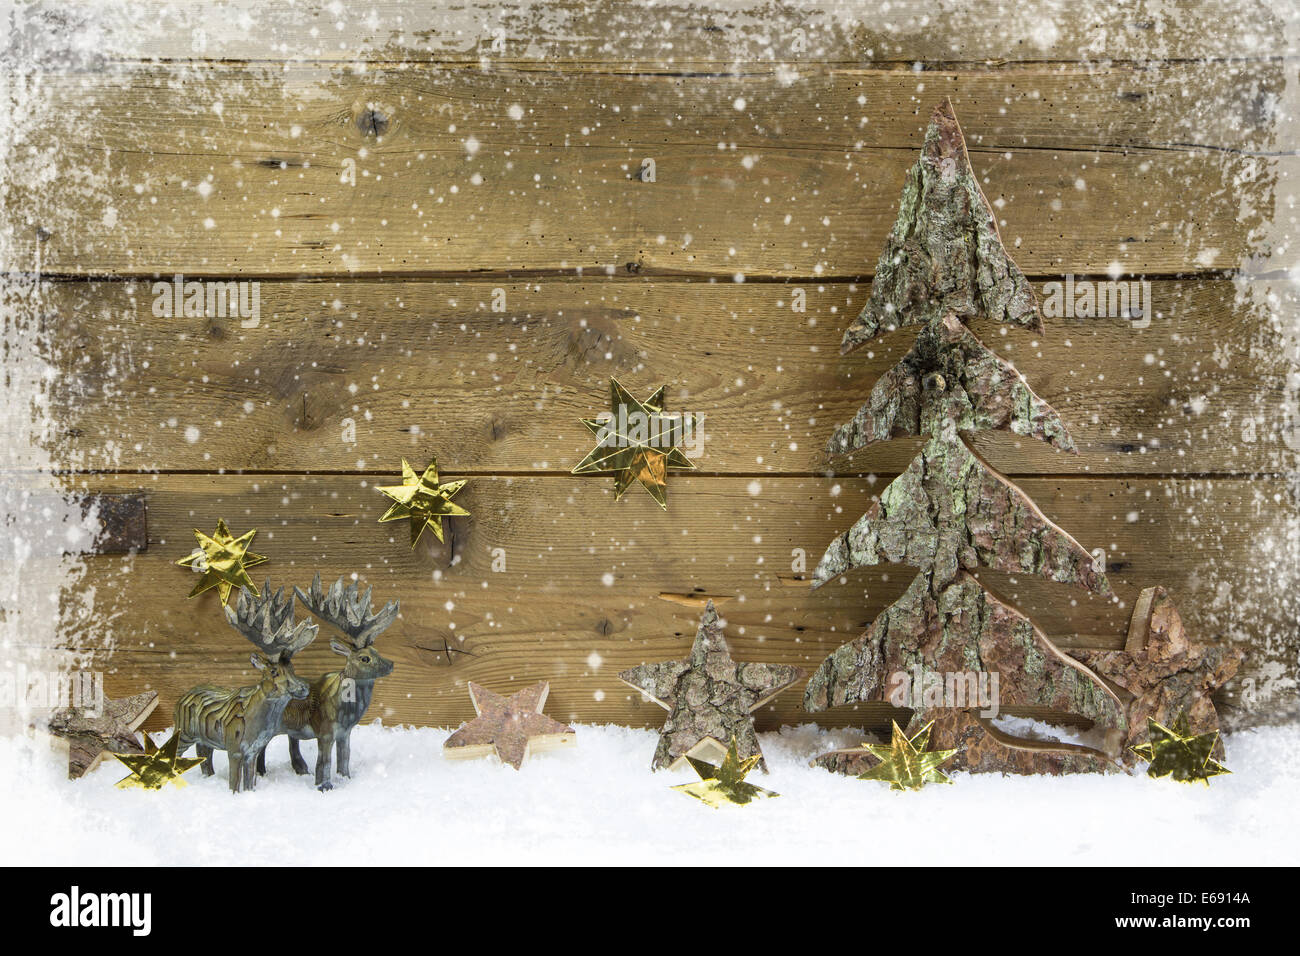 Wooden Country Style Christmas Background With Reindeer And Snow Idea For A Xmas Greeting Card